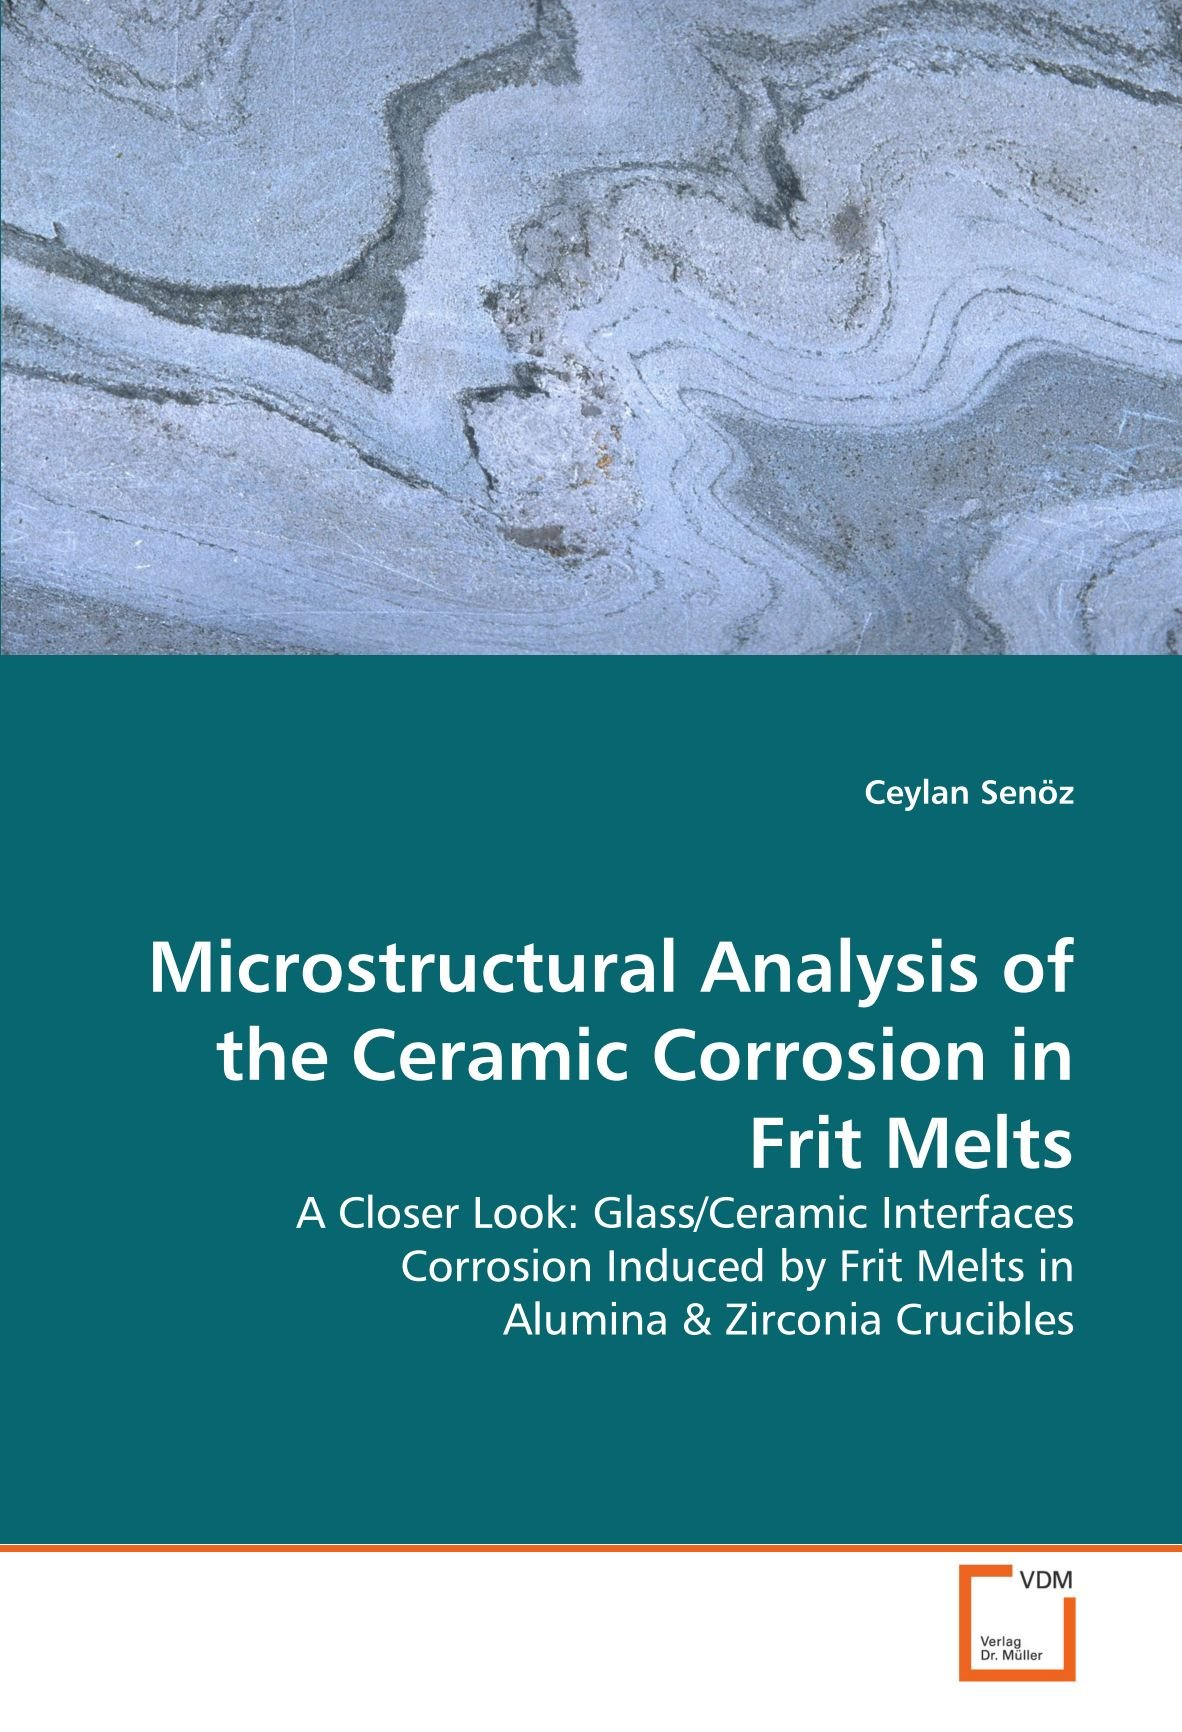 Download Microstructural Analysis of the Ceramic Corrosion in Frit Melts: A Closer Look: Glass/Ceramic Interfaces Corrosion Induced by Frit Melts in Alumina PDF